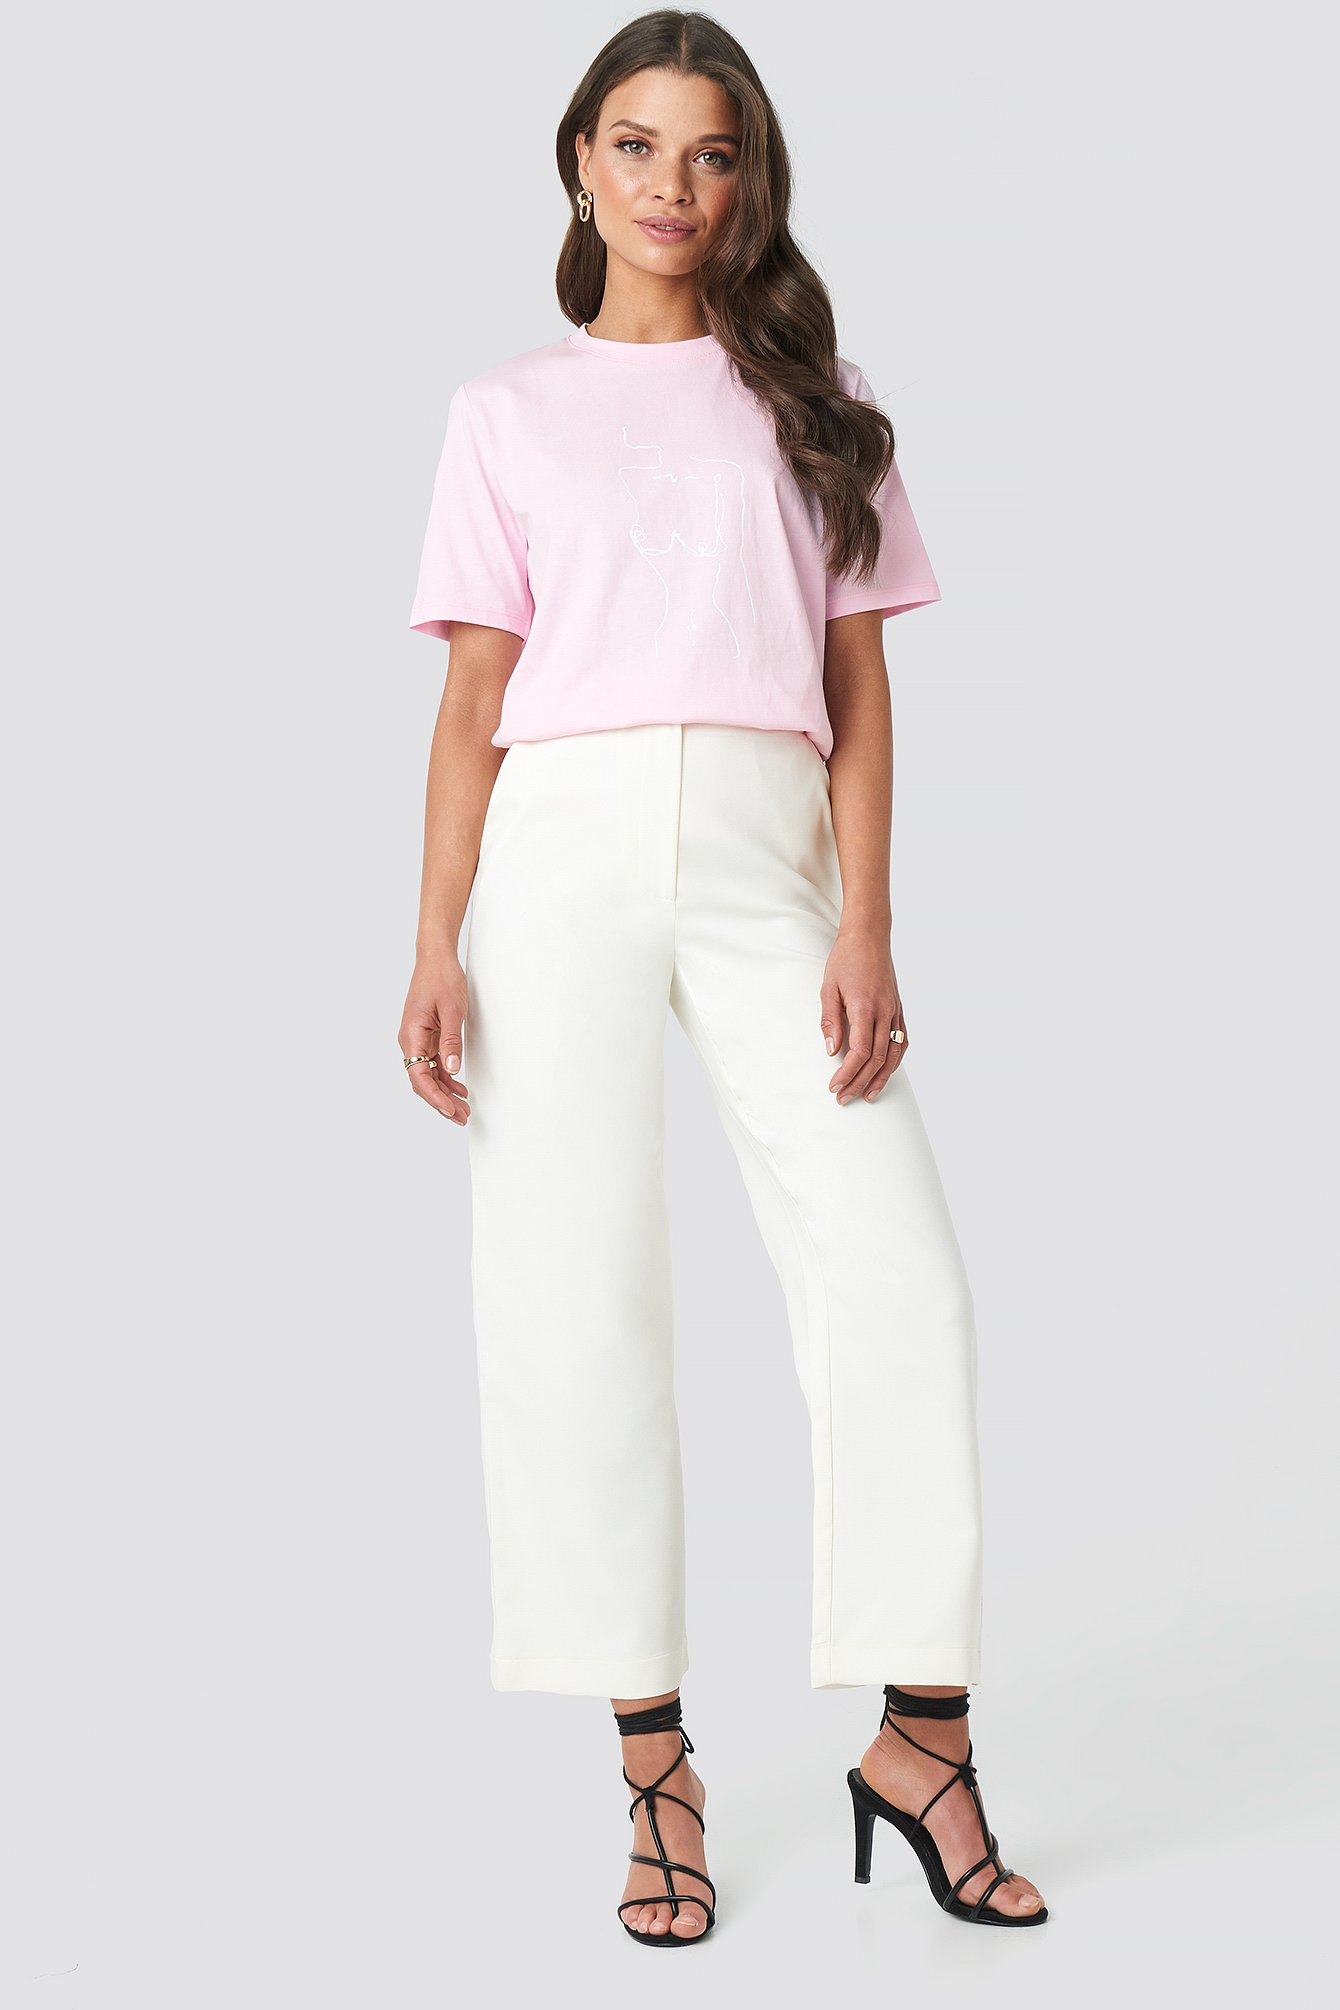 White Highwaist Cropped Pants